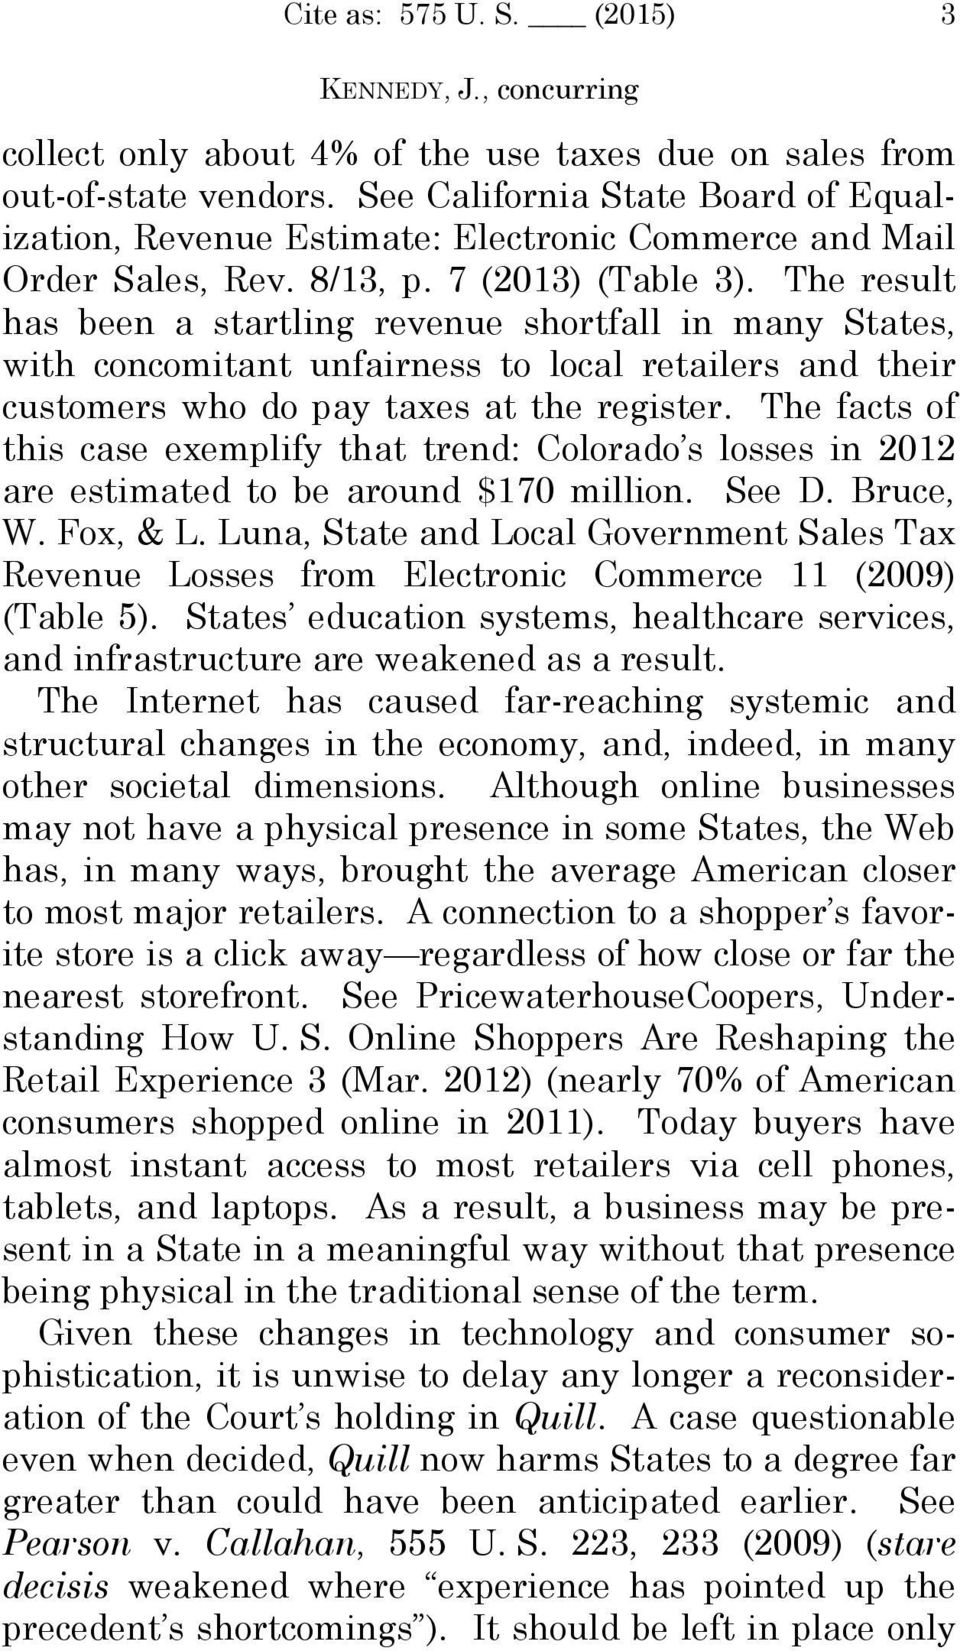 The result has been a startling revenue shortfall in many States, with concomitant unfairness to local retailers and their customers who do pay taxes at the register.